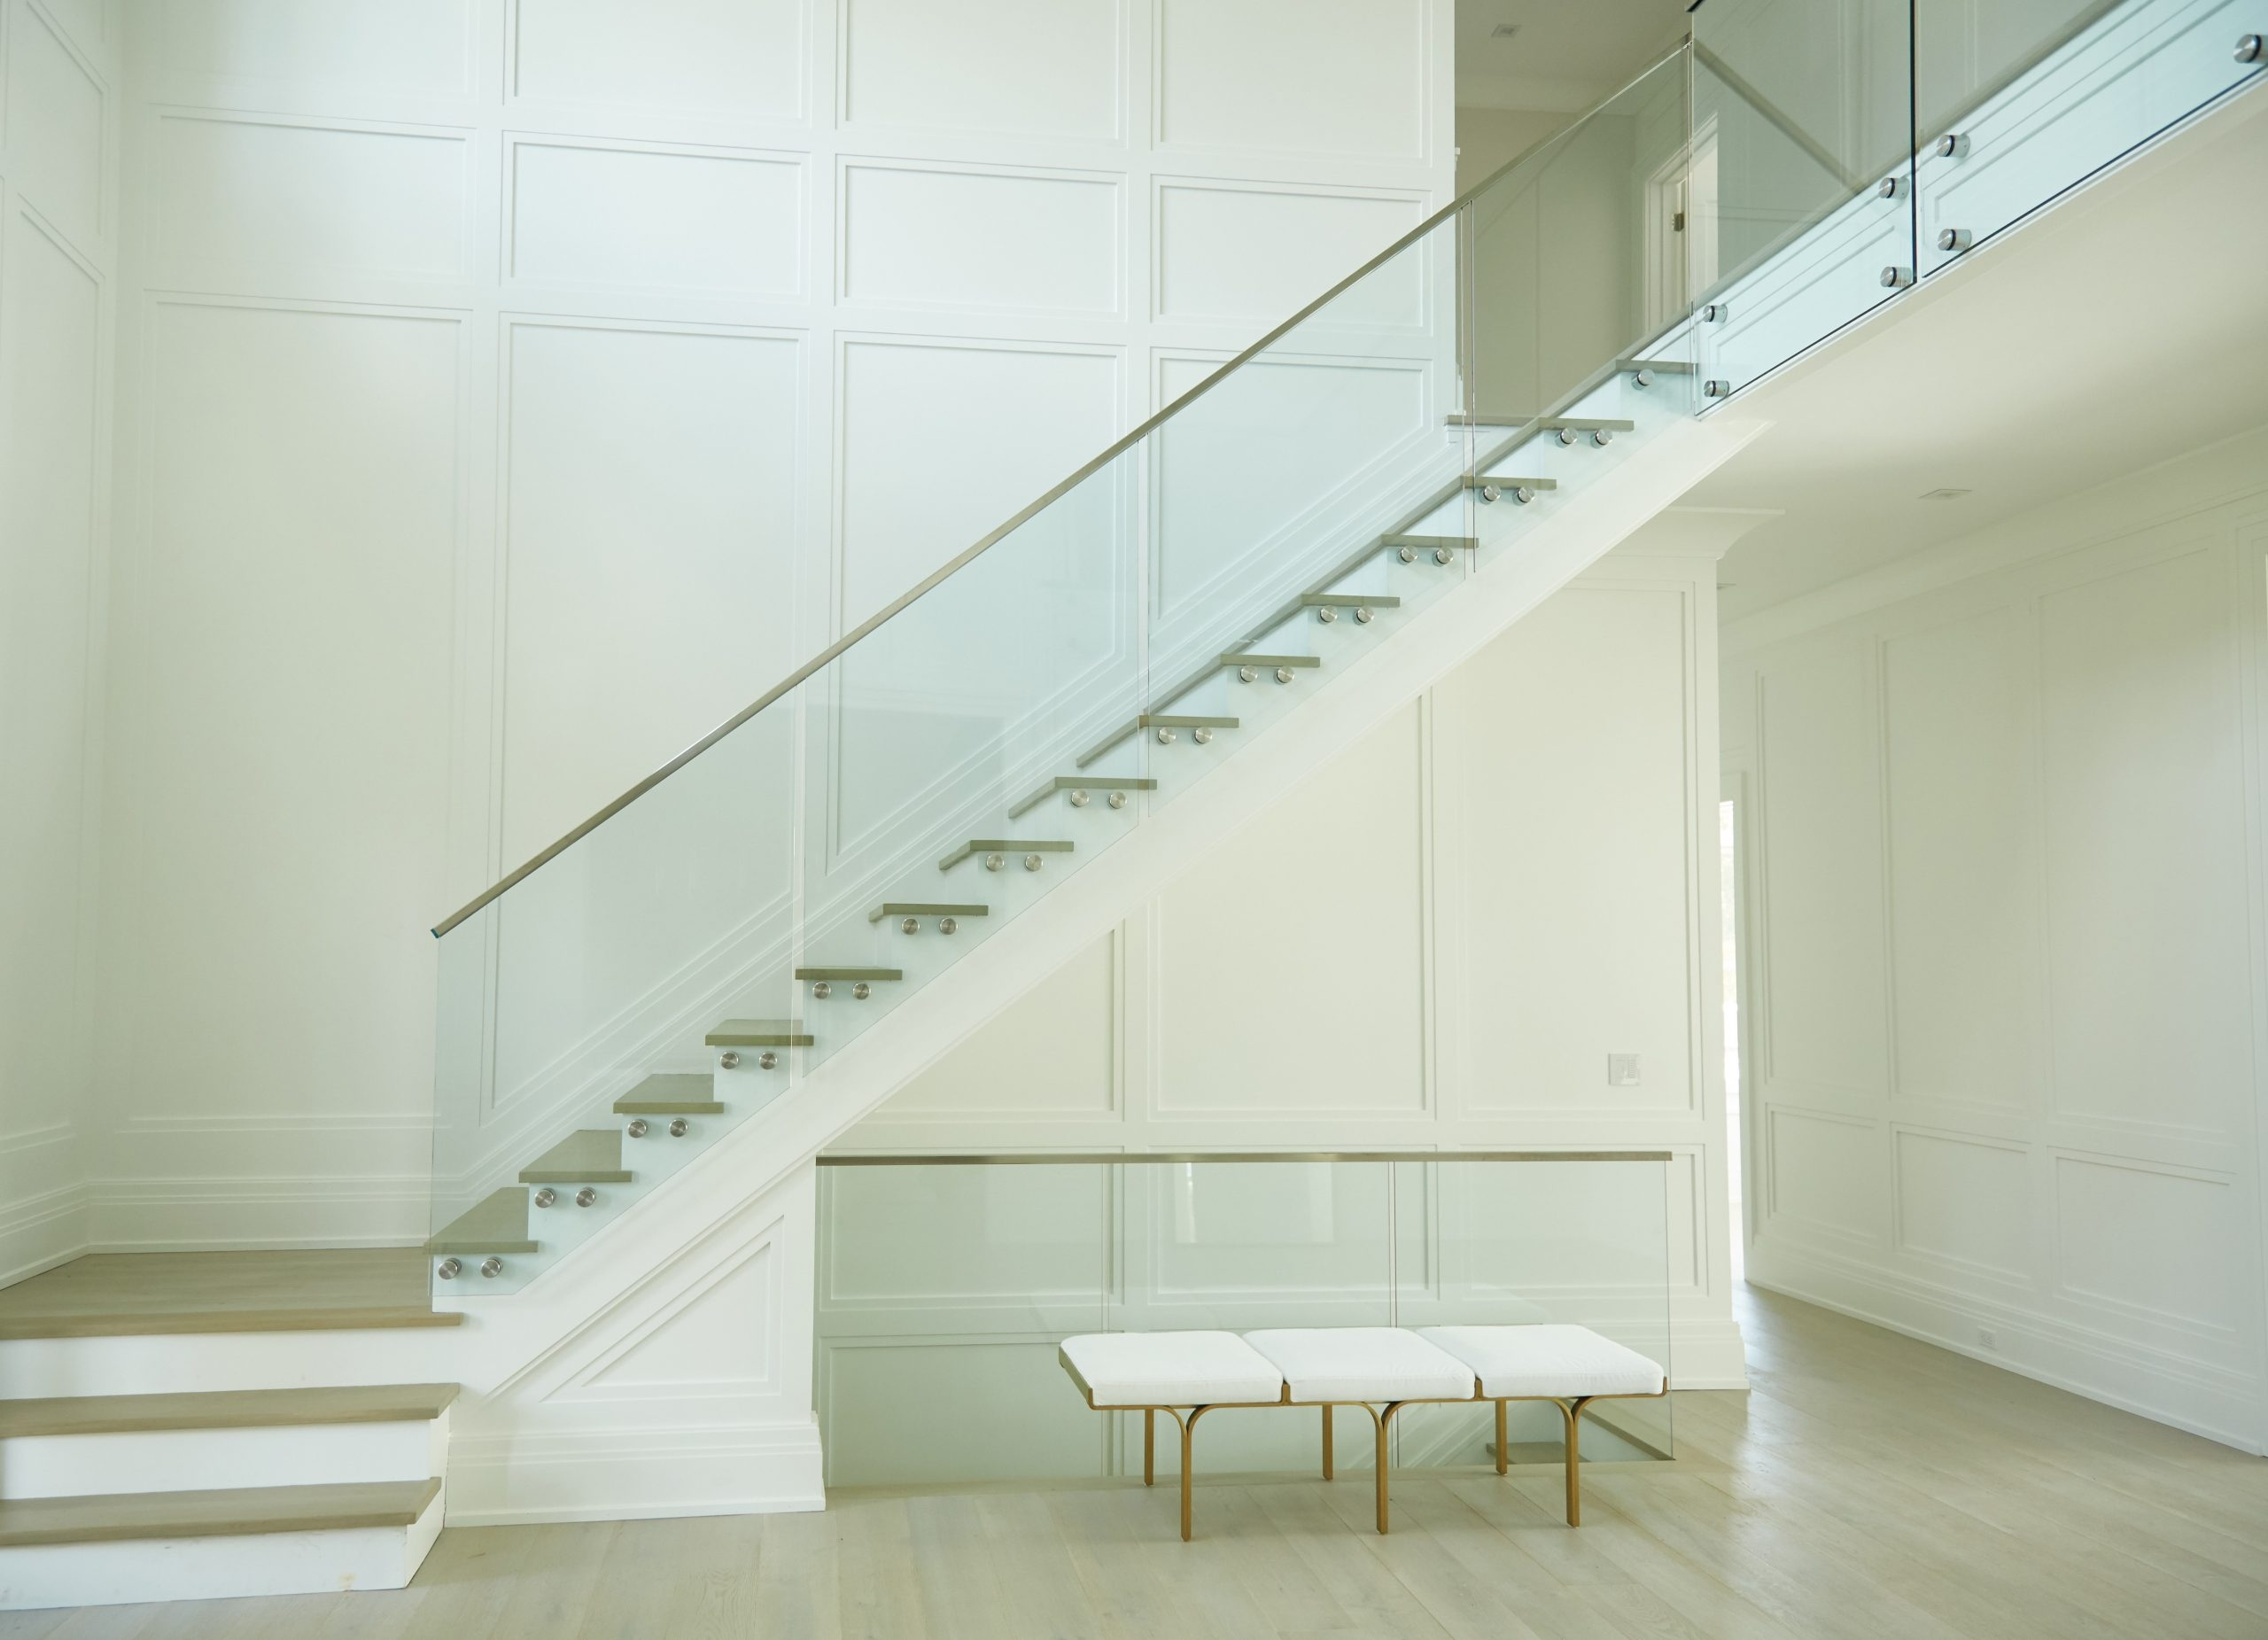 Interior Glass Railing Viewrail | New Handrail For Stairs | Traditional | Wall Both Side | Contemporary | Mission Style | Wrought Iron